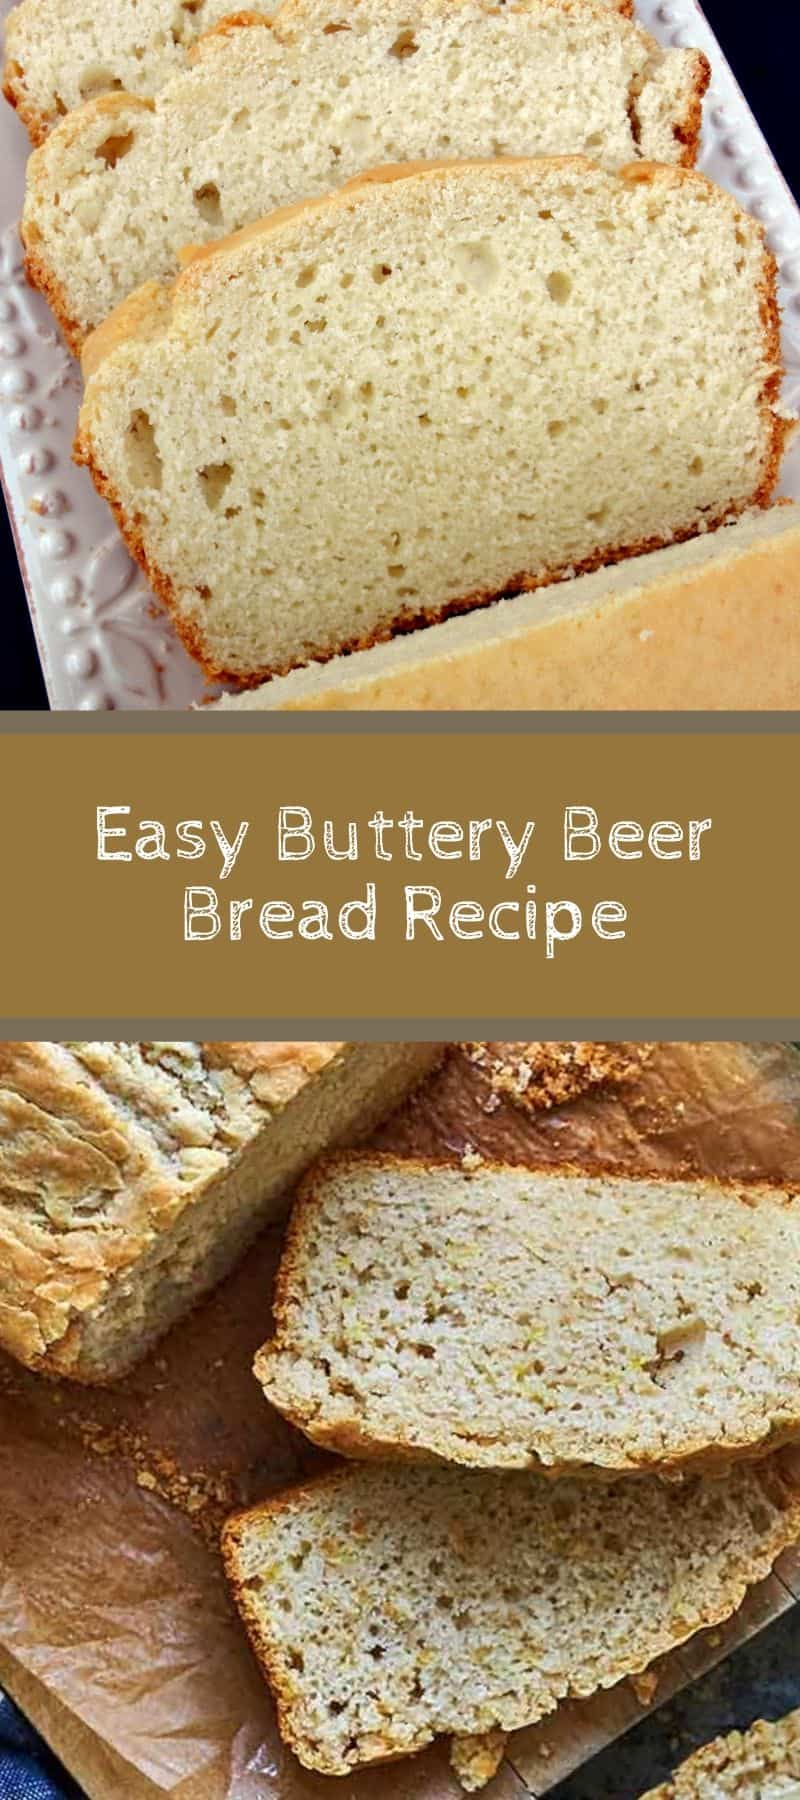 Easy Buttery Beer Bread Recipe 3